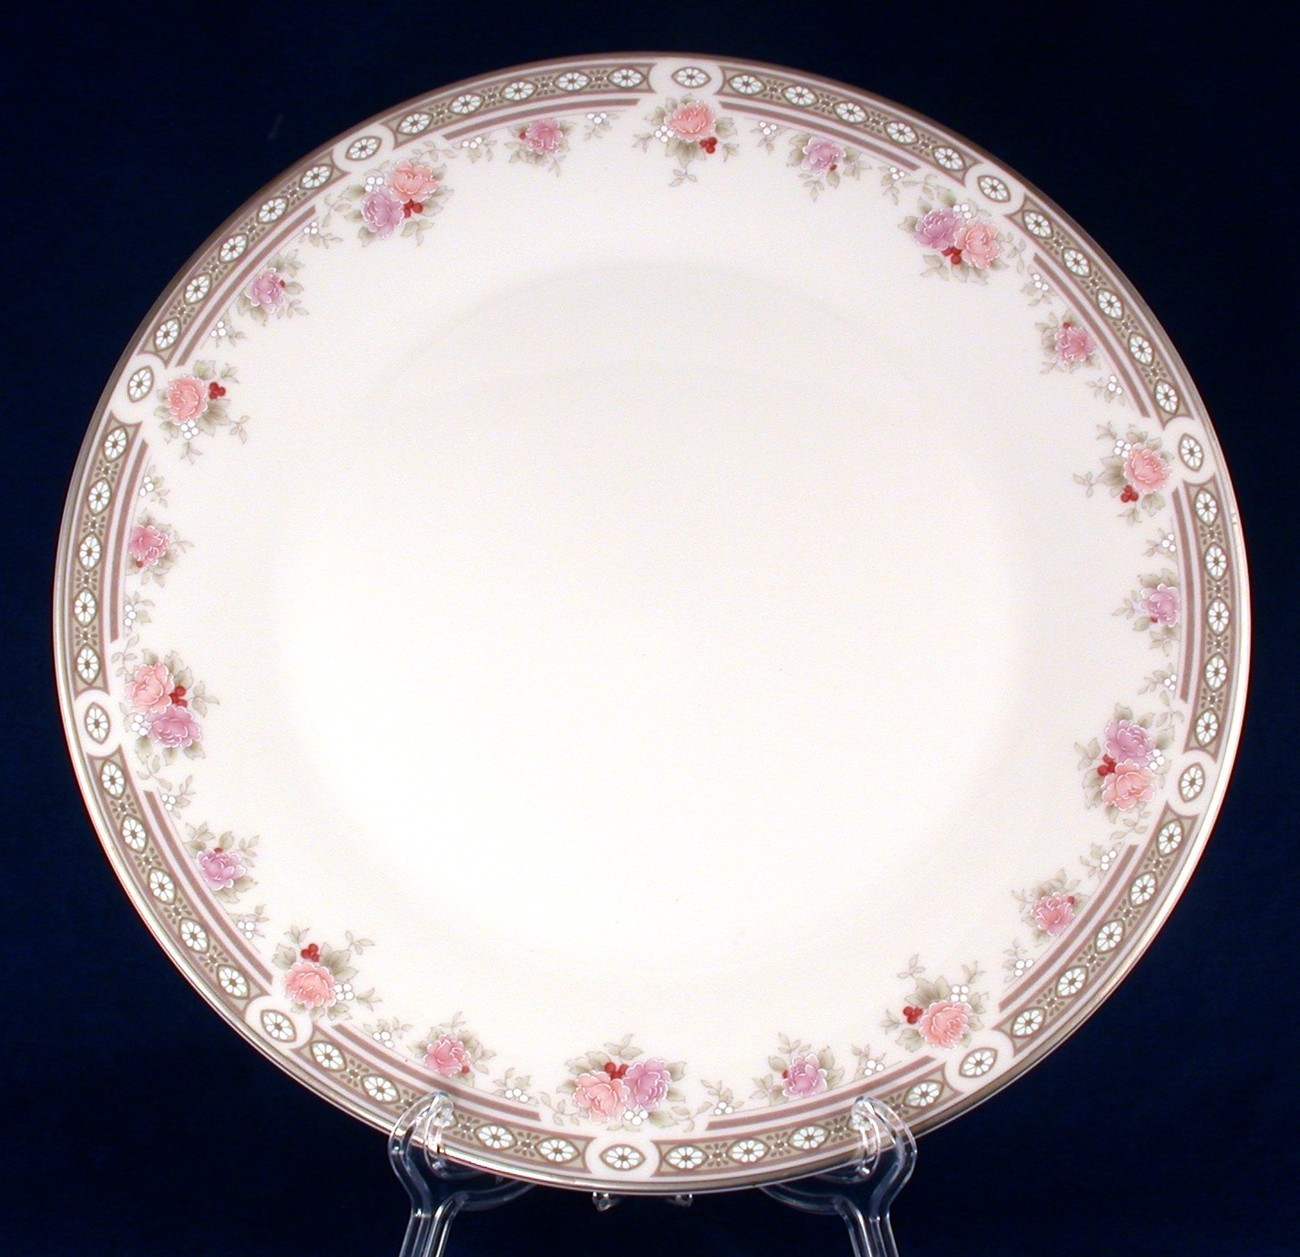 Royal Doulton Elegance Dinner Plate TC1158 Vogue Collection New China Royal